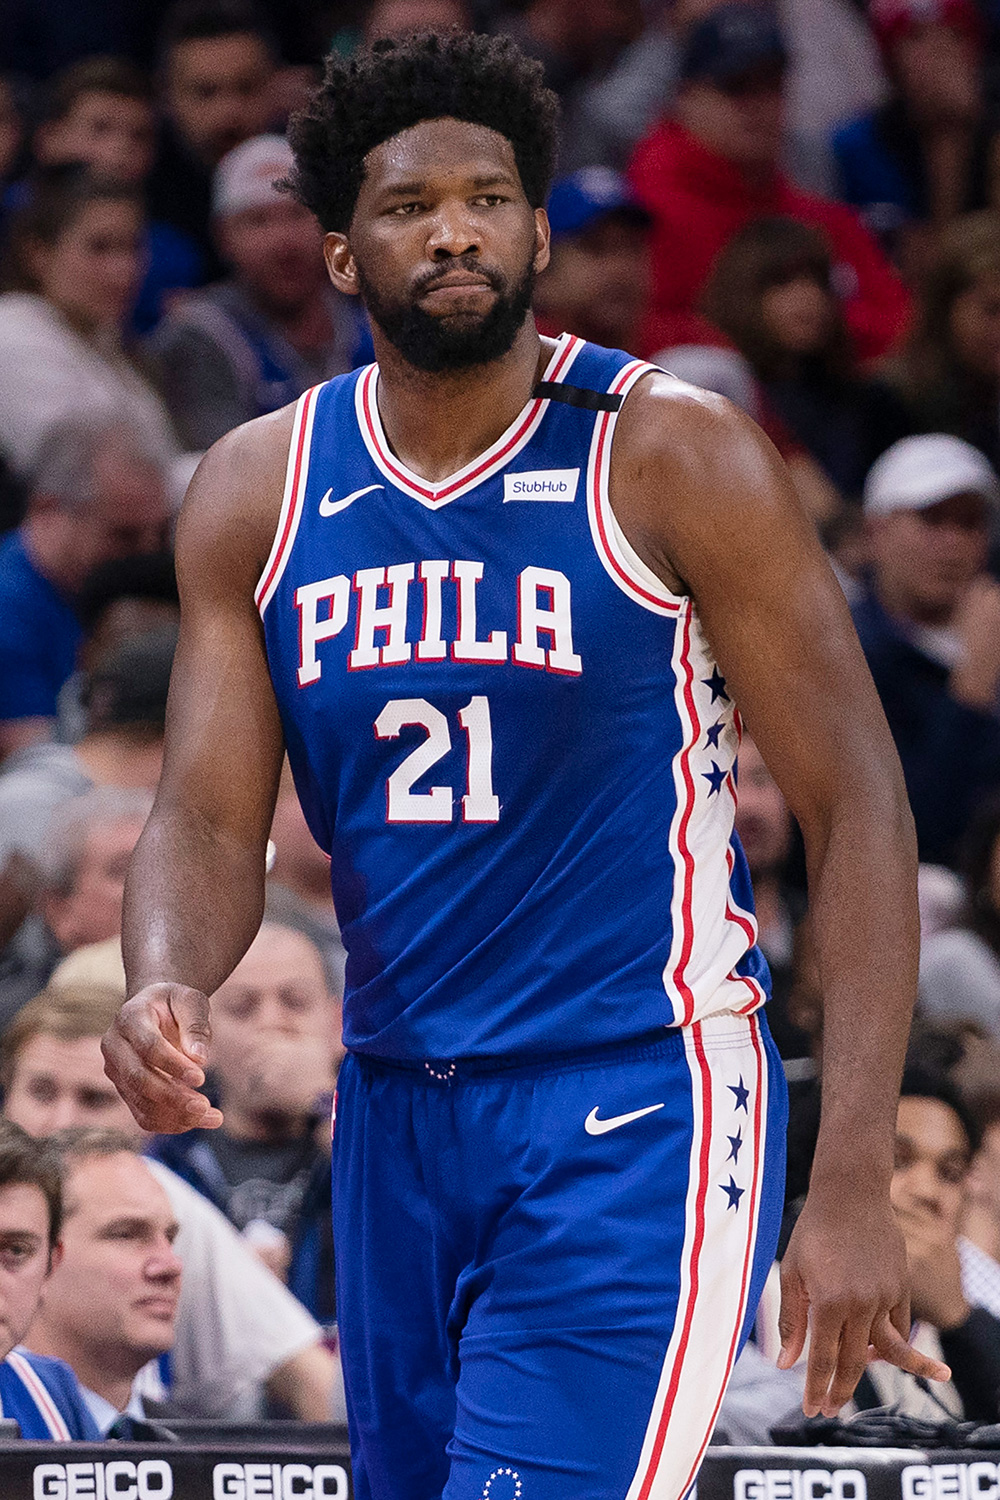 Joel Embiid #21 of the Philadelphia 76ers points against the Oklahoma City Thunder in the second quarter at the Wells Fargo Center on January 6, 2020 in Philadelphia, Pennsylvania